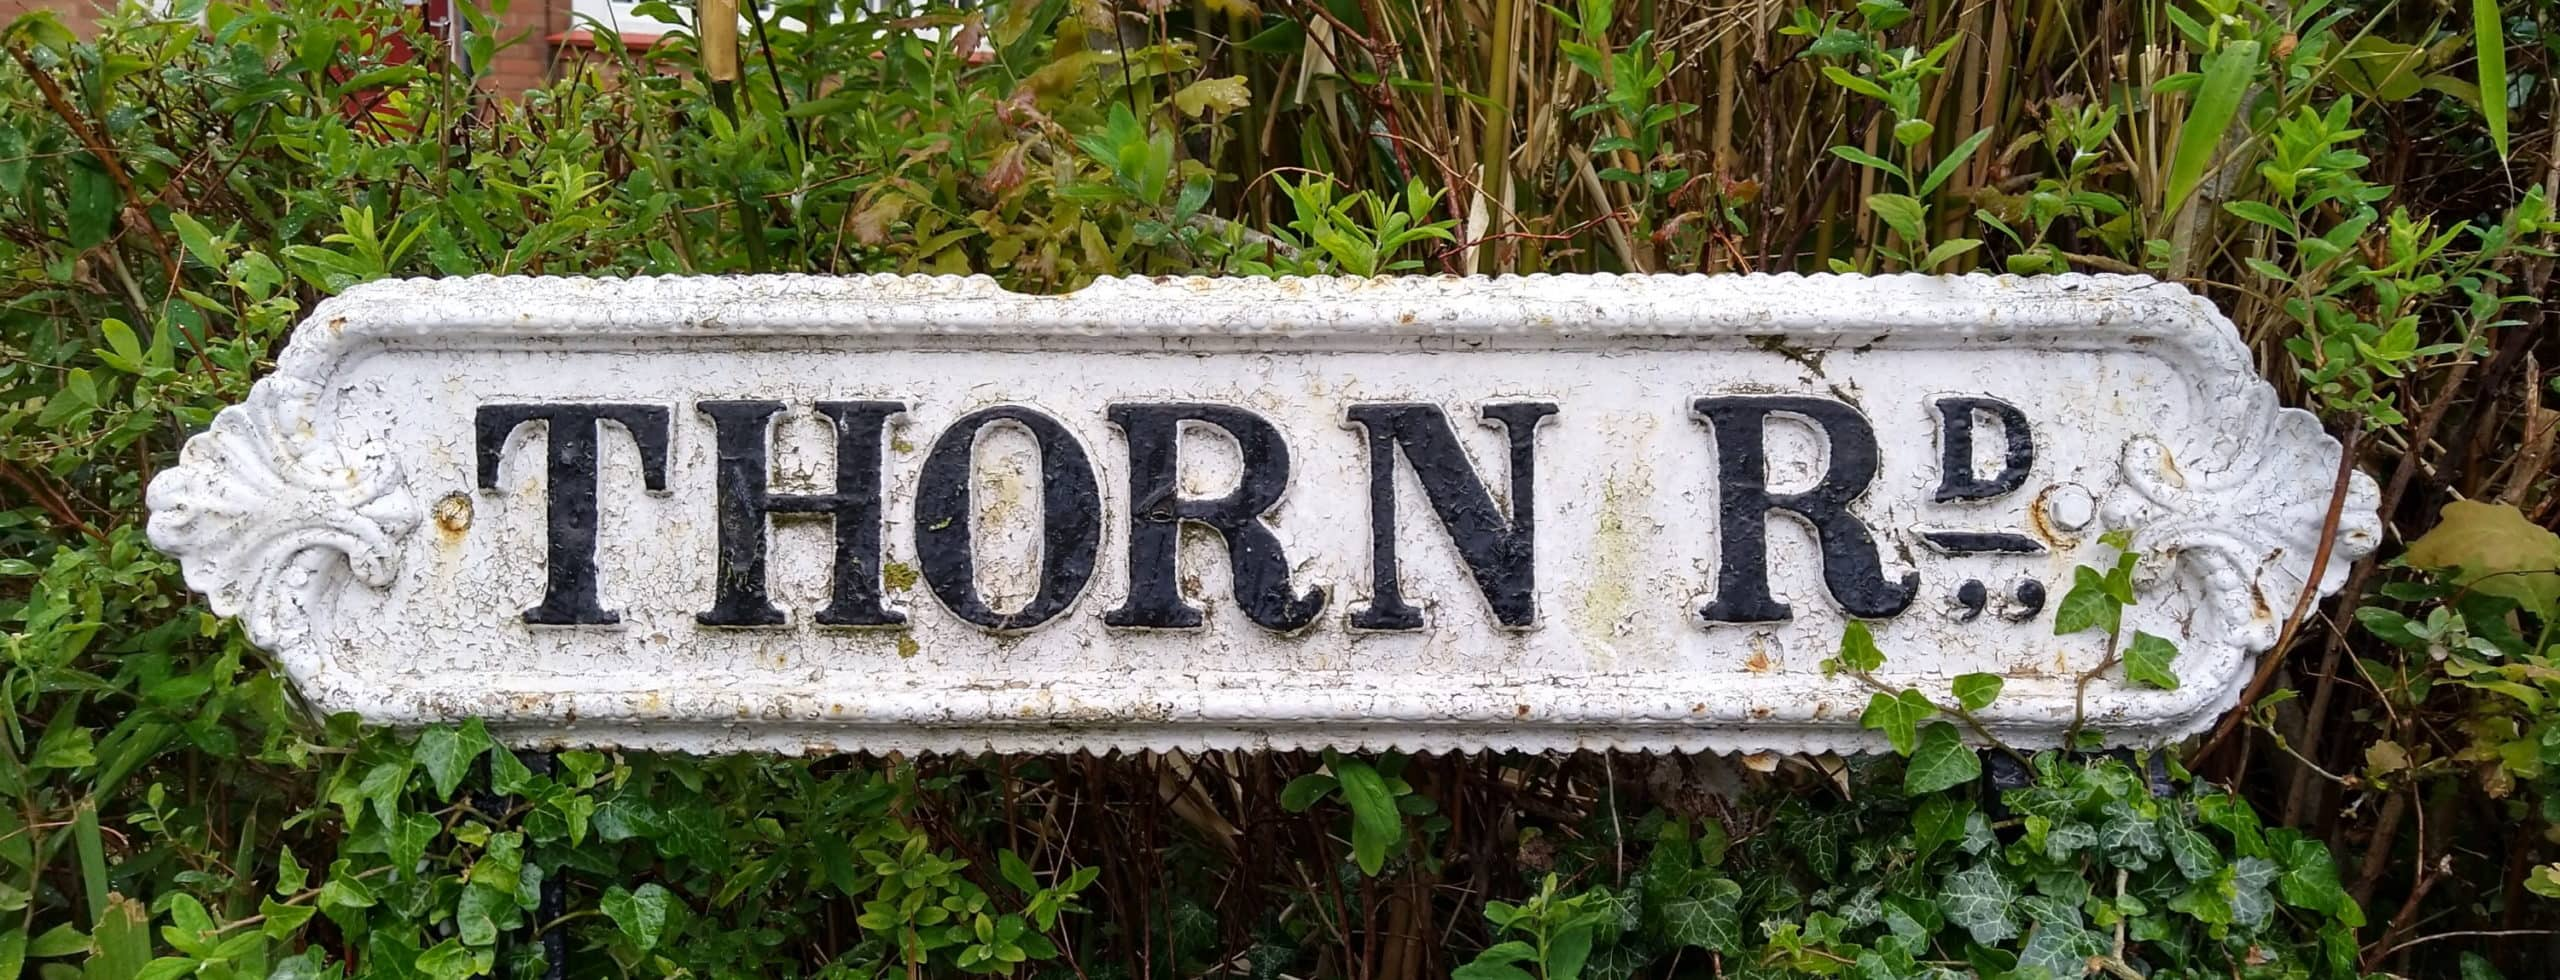 Cast-iron street sign for Thorn Road, Birmingham